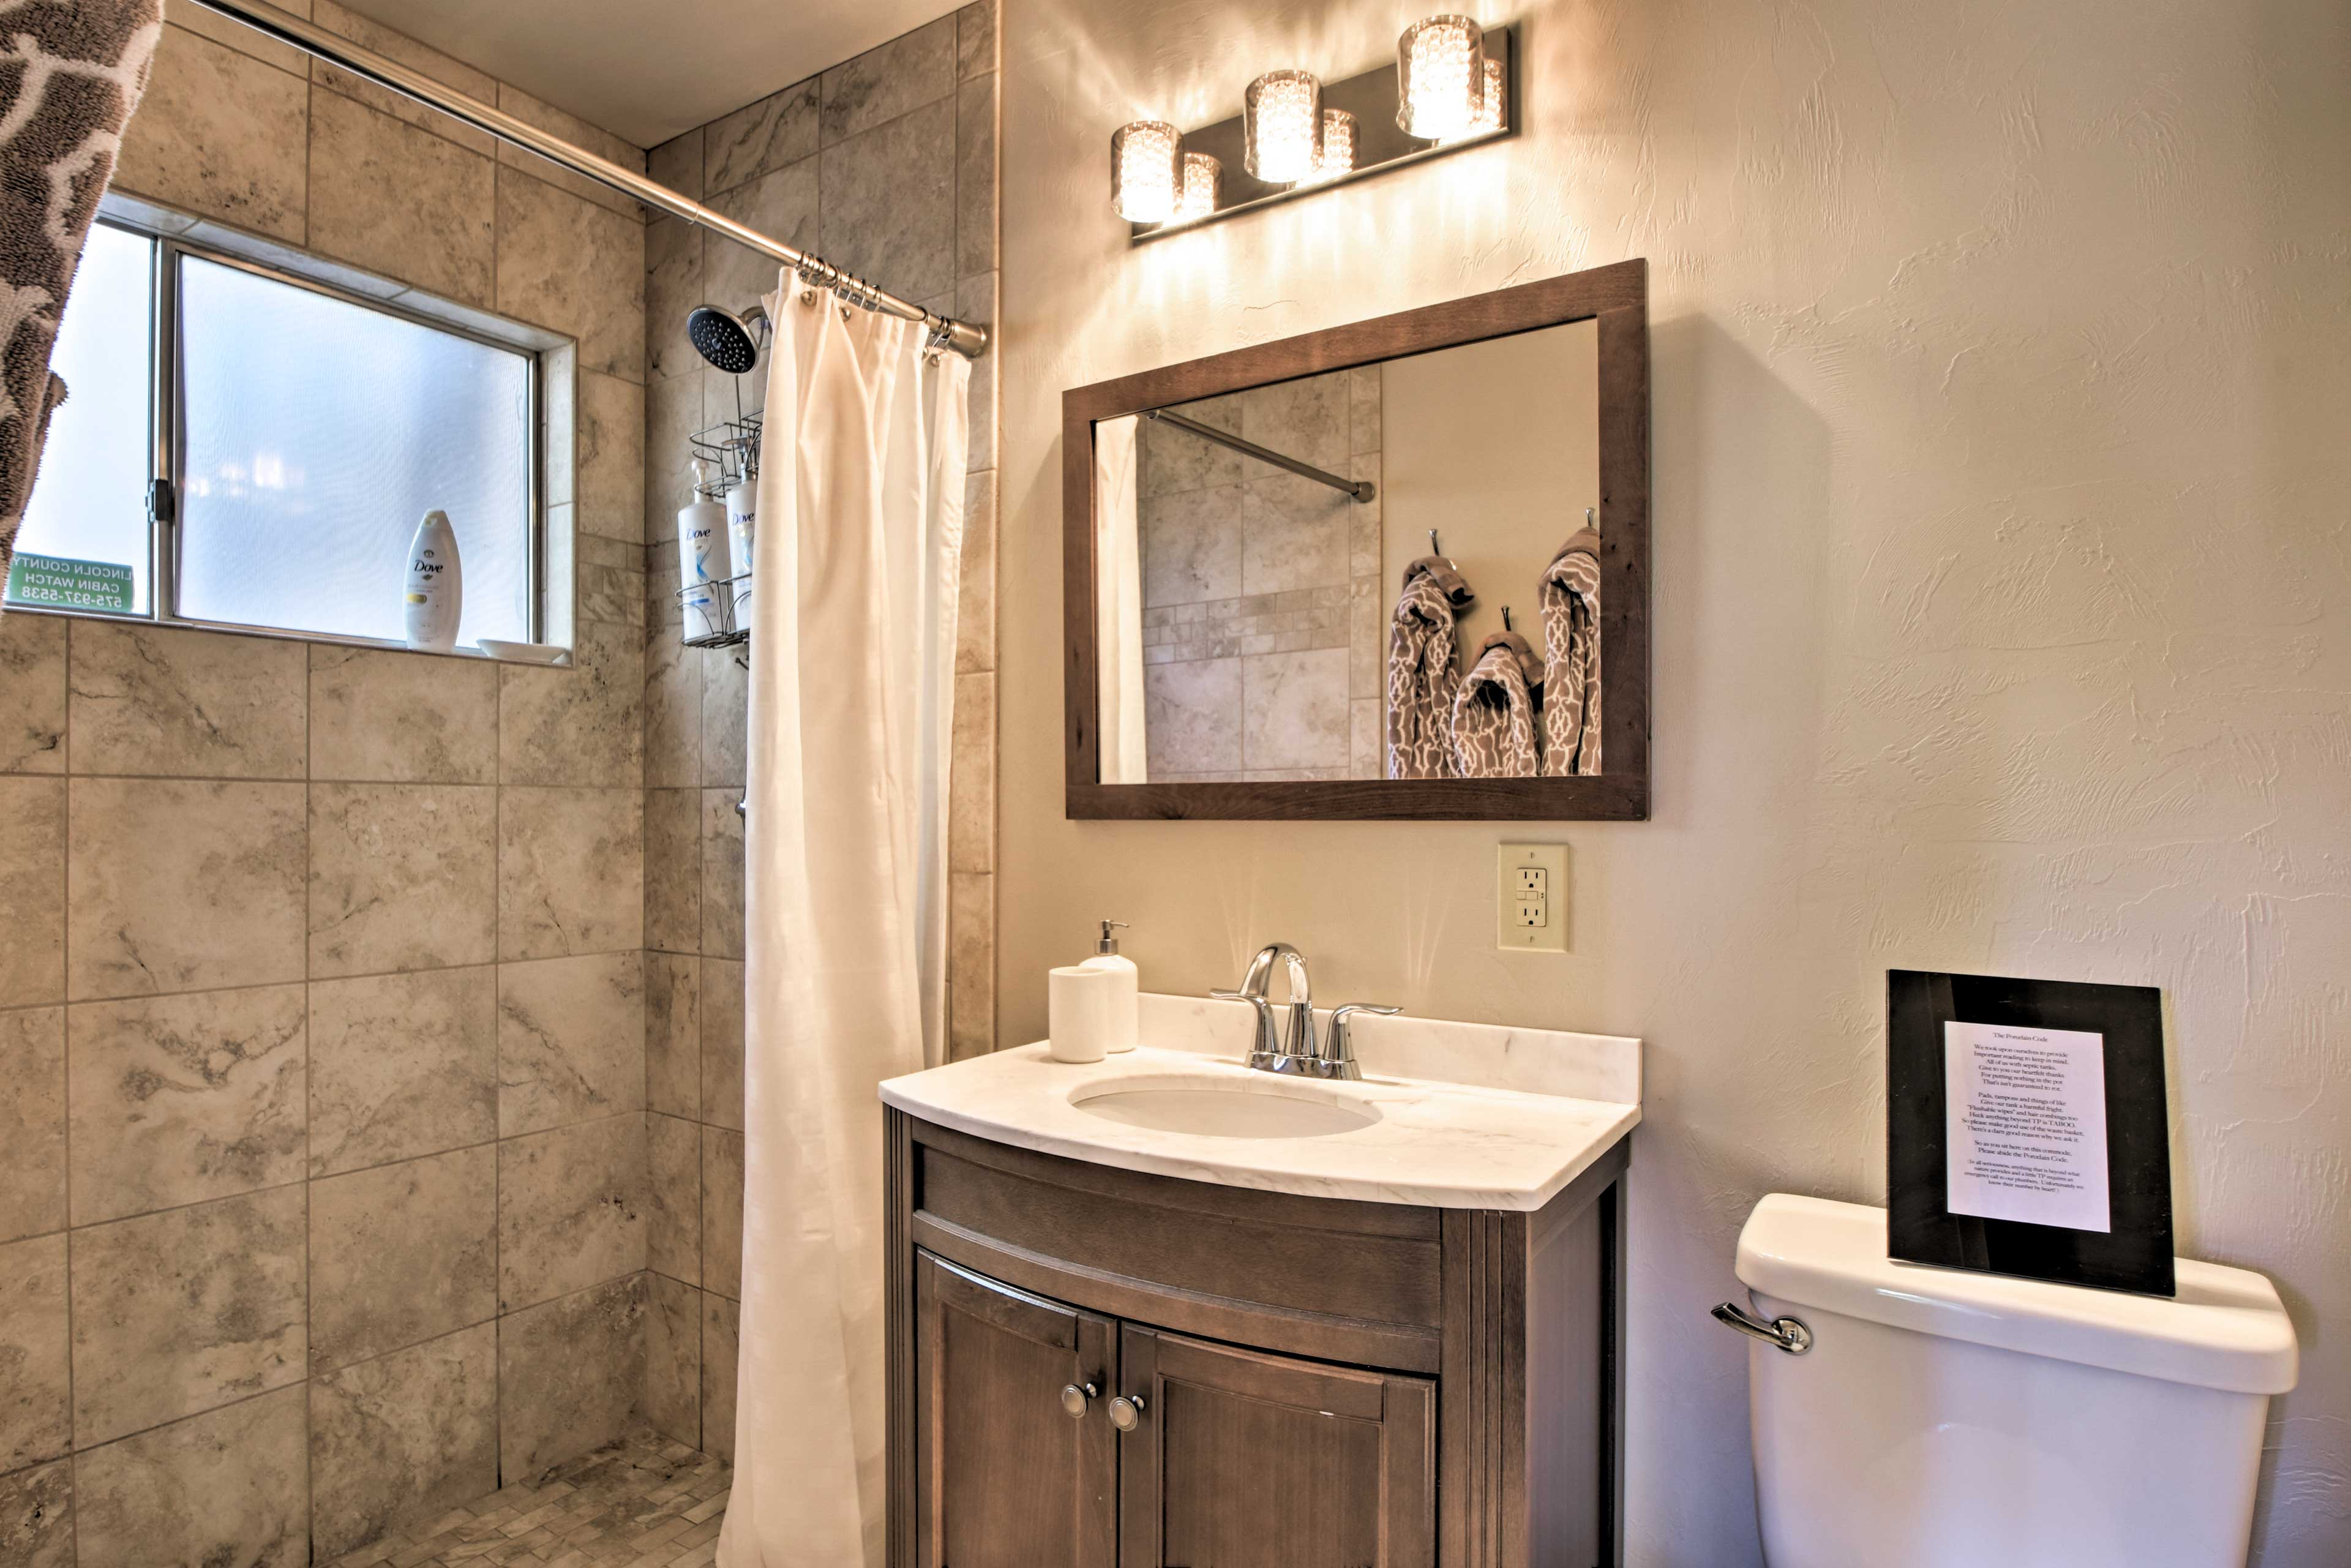 This tiled walk-in shower and full bathroom is just steps away.